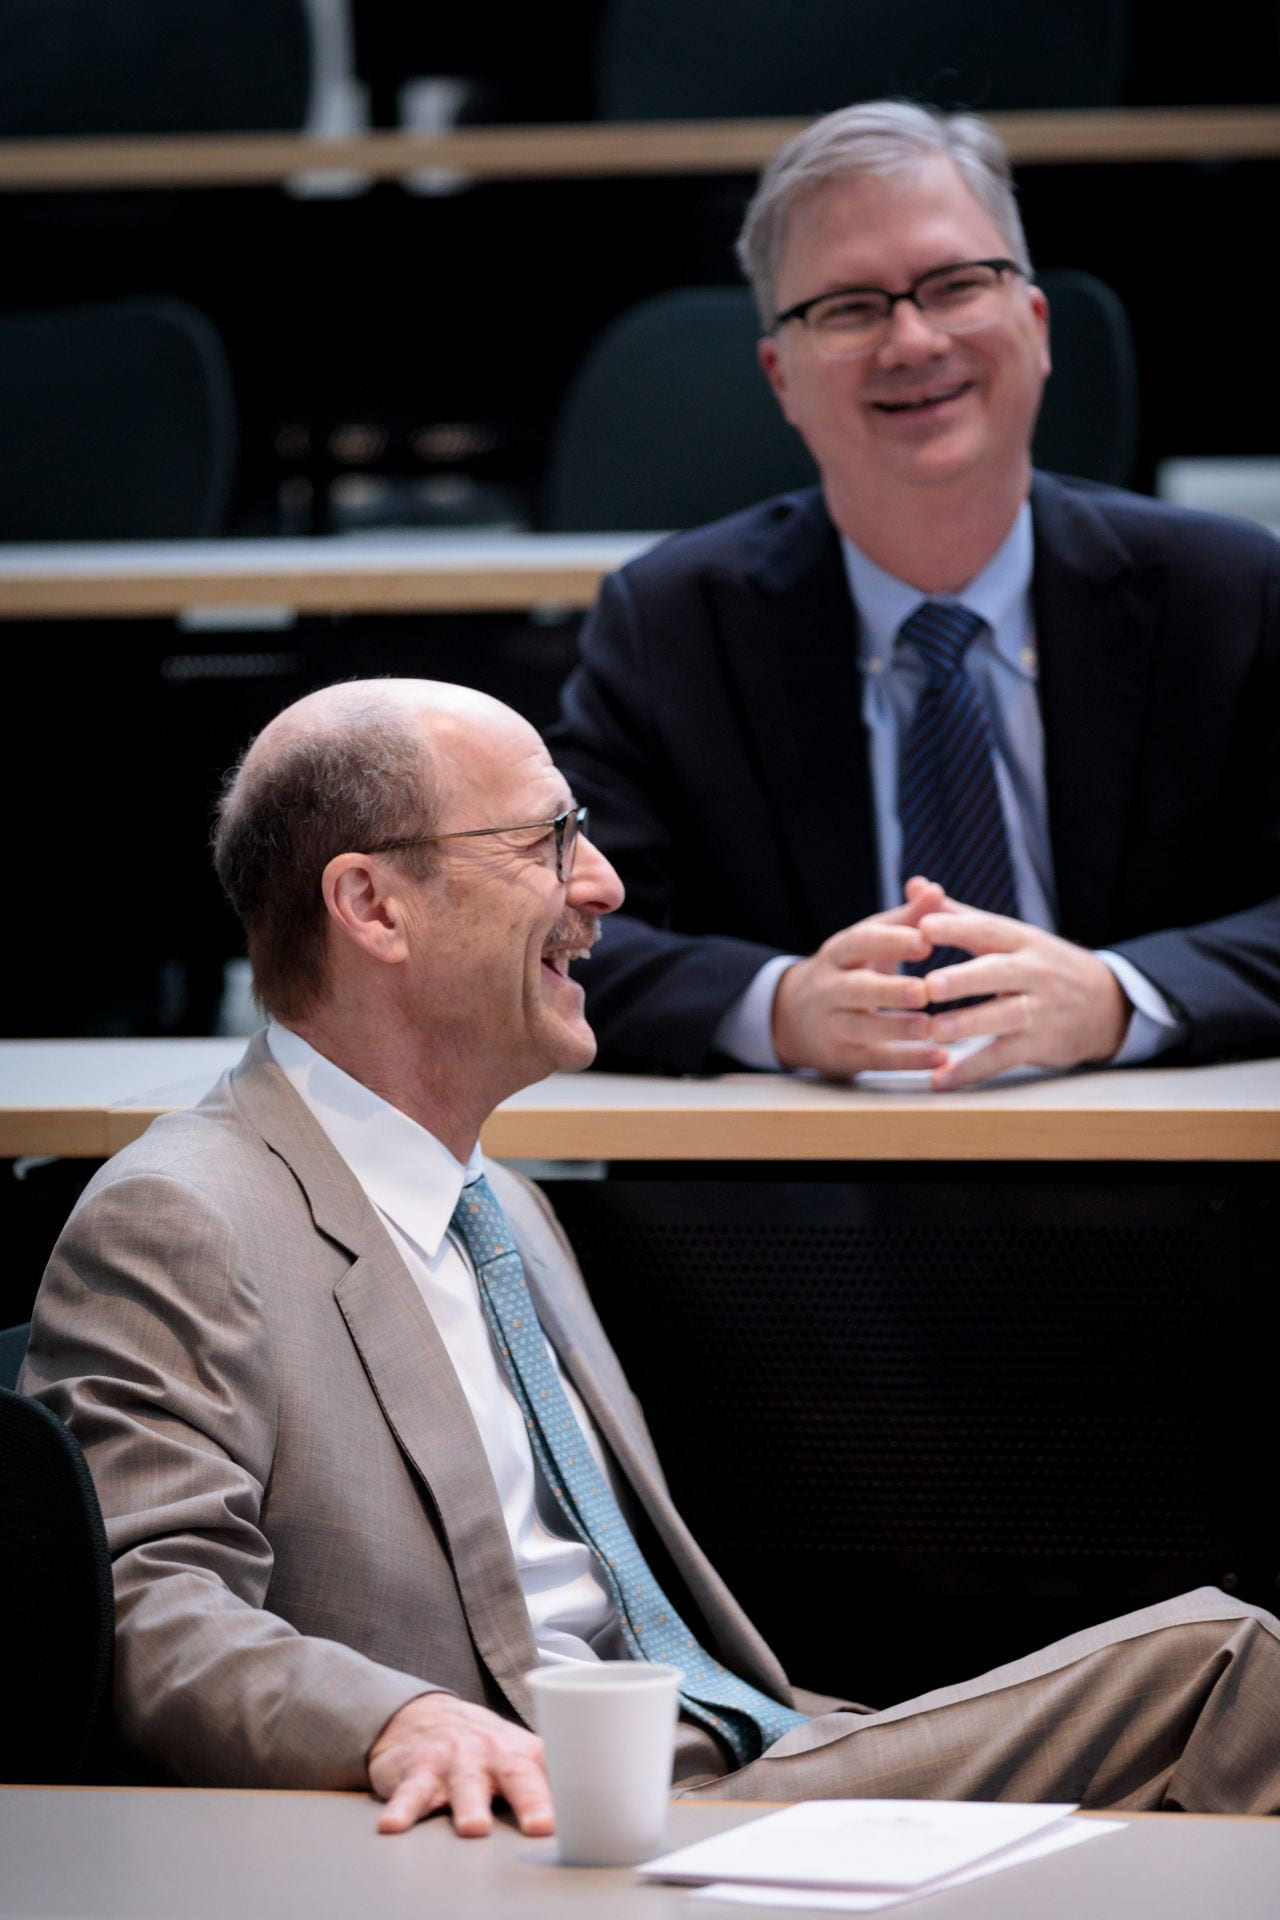 Dean David Perlmutter, foreground, and Provost Holden Thorp